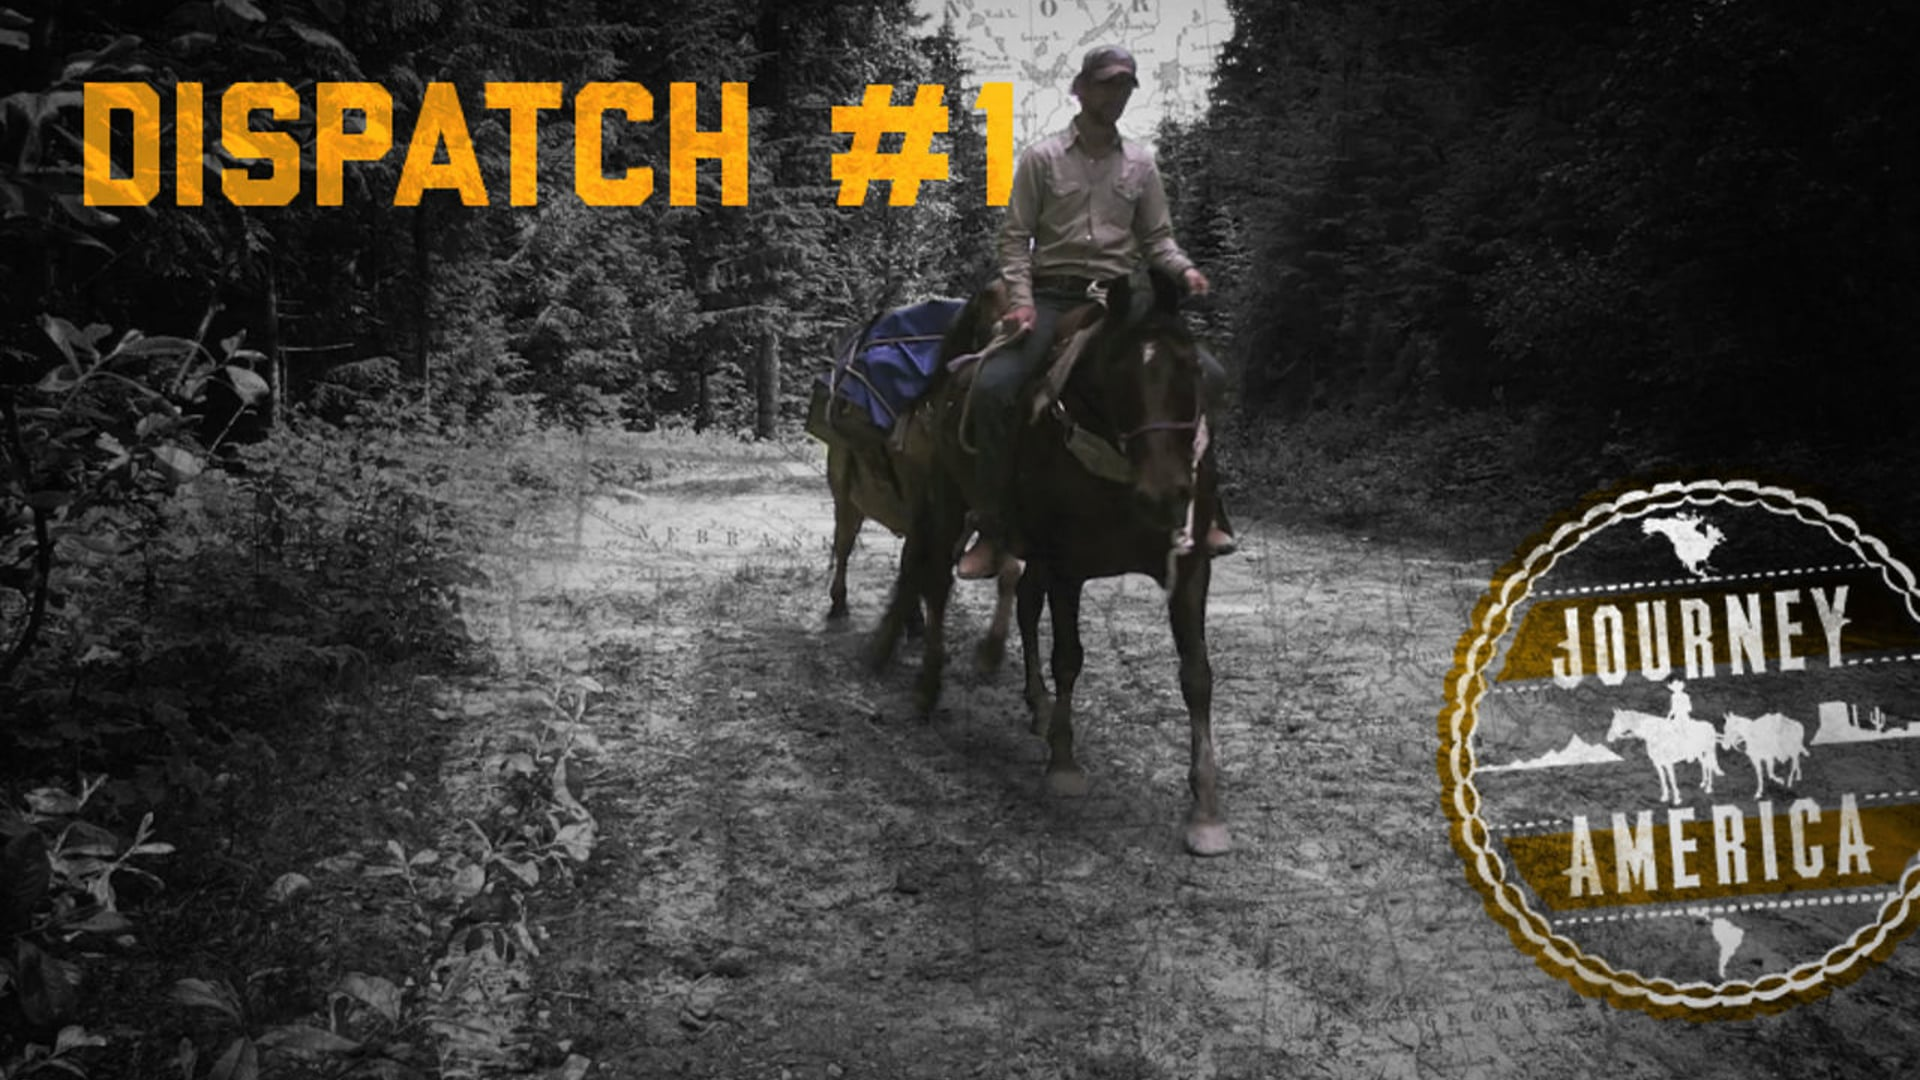 Dispatch #1 - Horse-shoeing